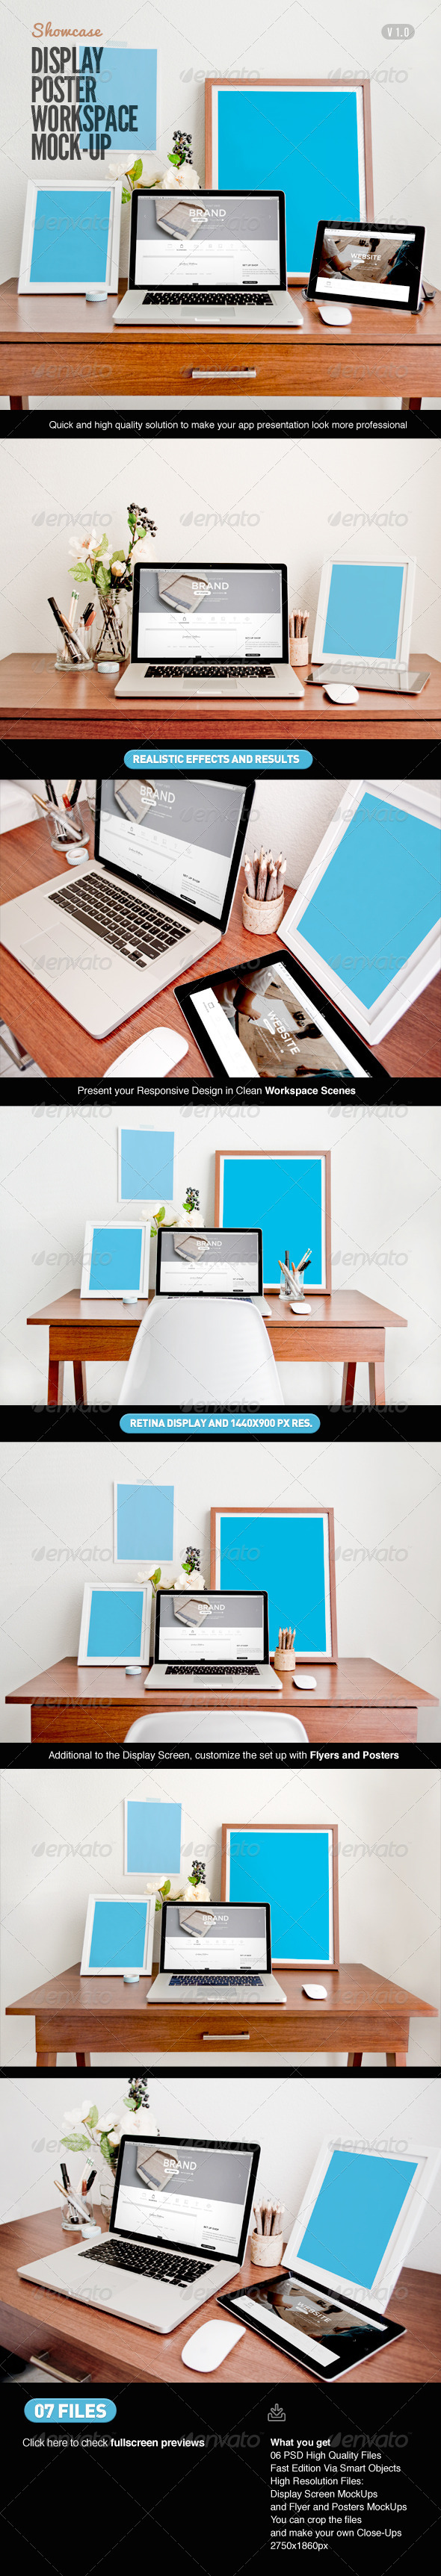 GraphicRiver Display Poster Workspace Mock-Up 7766138